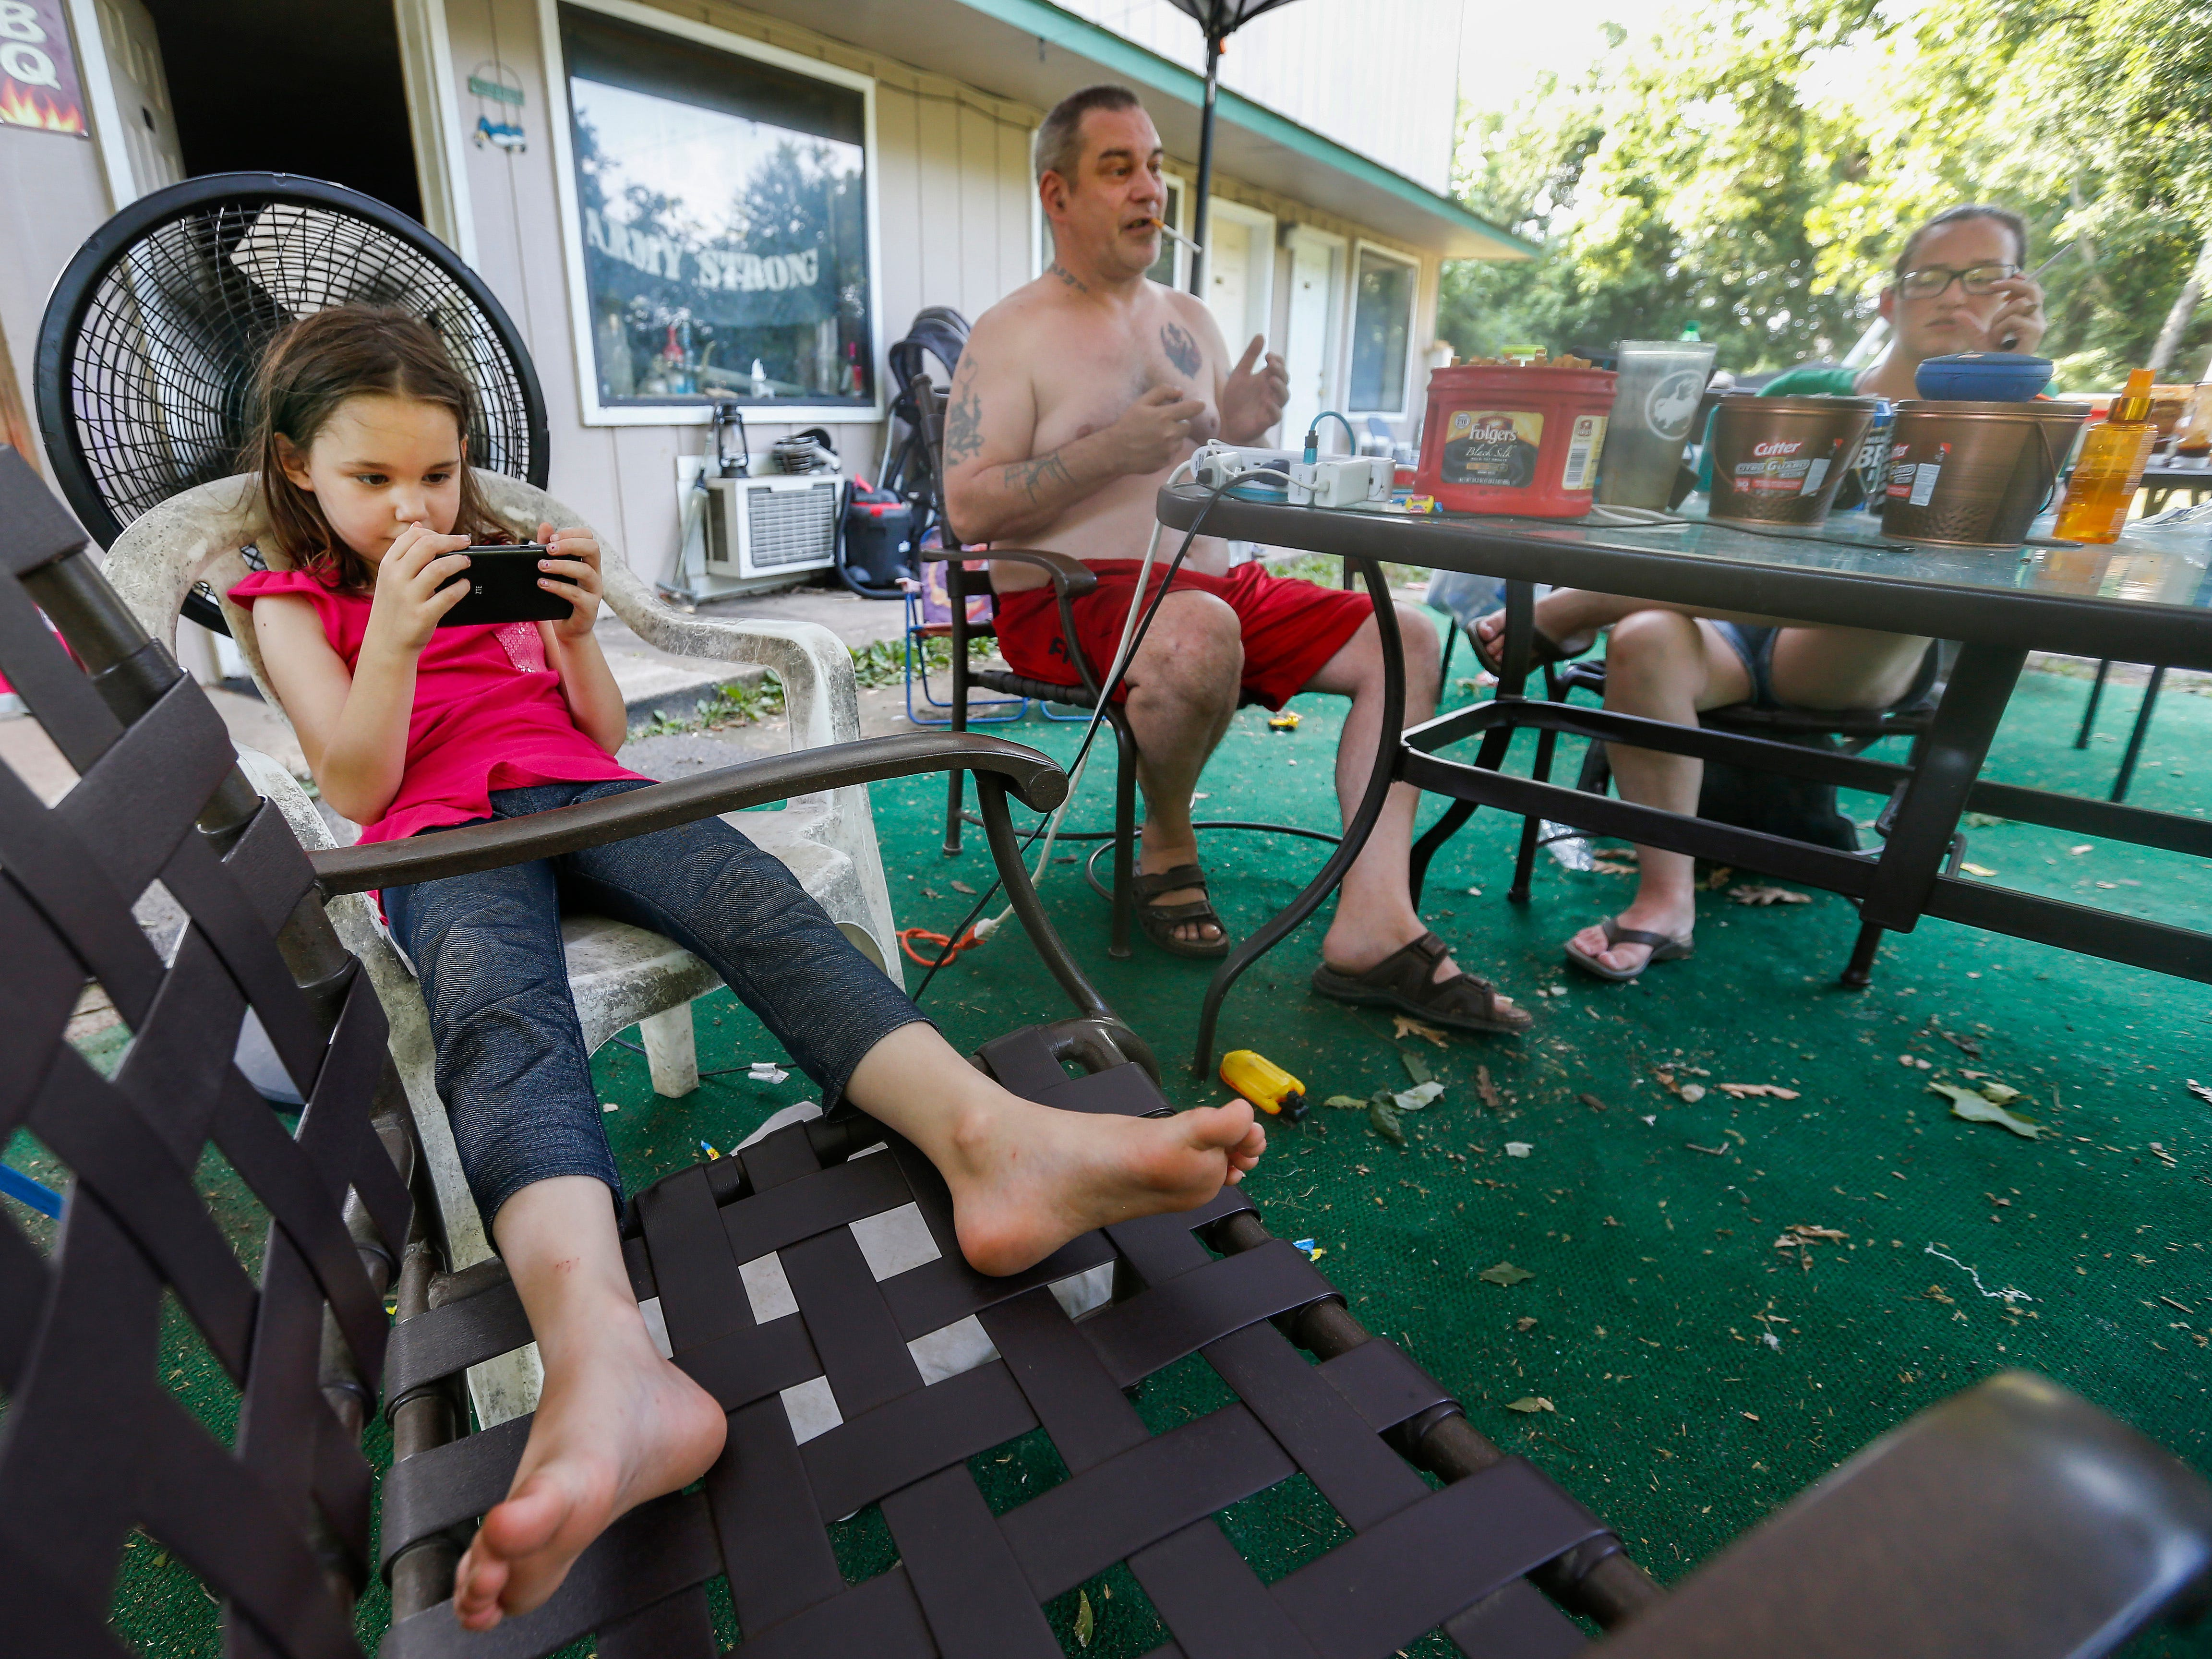 Deborah Norris, 6, watches a video on a cellphone while a fan blows behind her as her parents Chuck Stuedl and Amanda Norris talk with friends while barbecuing outside of their room at the extended stay hotel they live in in Branson on Friday, July 20, 2018.